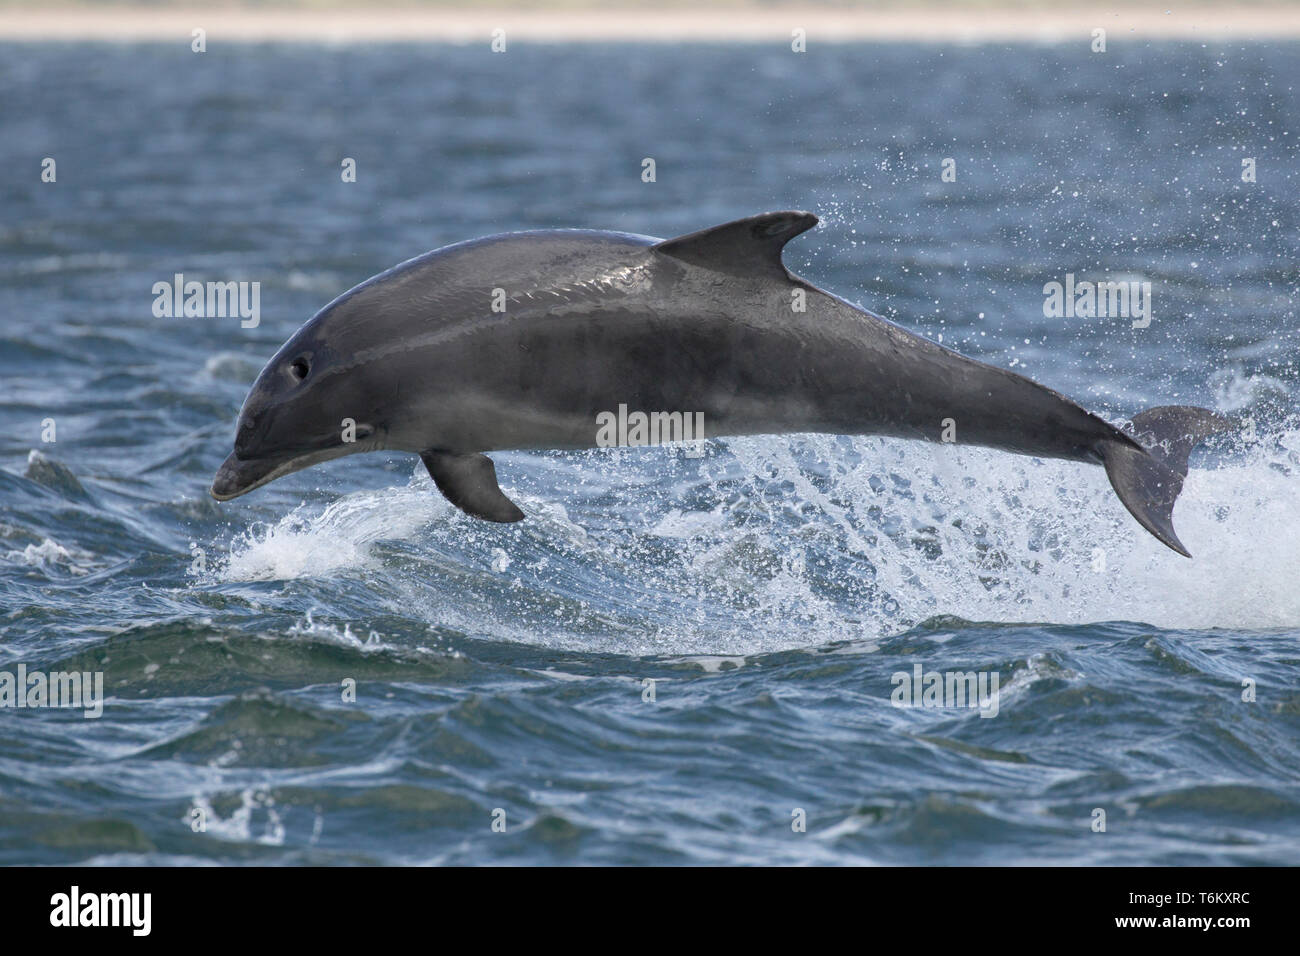 Bottlenose dolphin (Tursiops truncatus) leaping/breaching in the Moray Firth, Chanonry Point, Black Isle, Scotland, UK, Europe - Stock Image